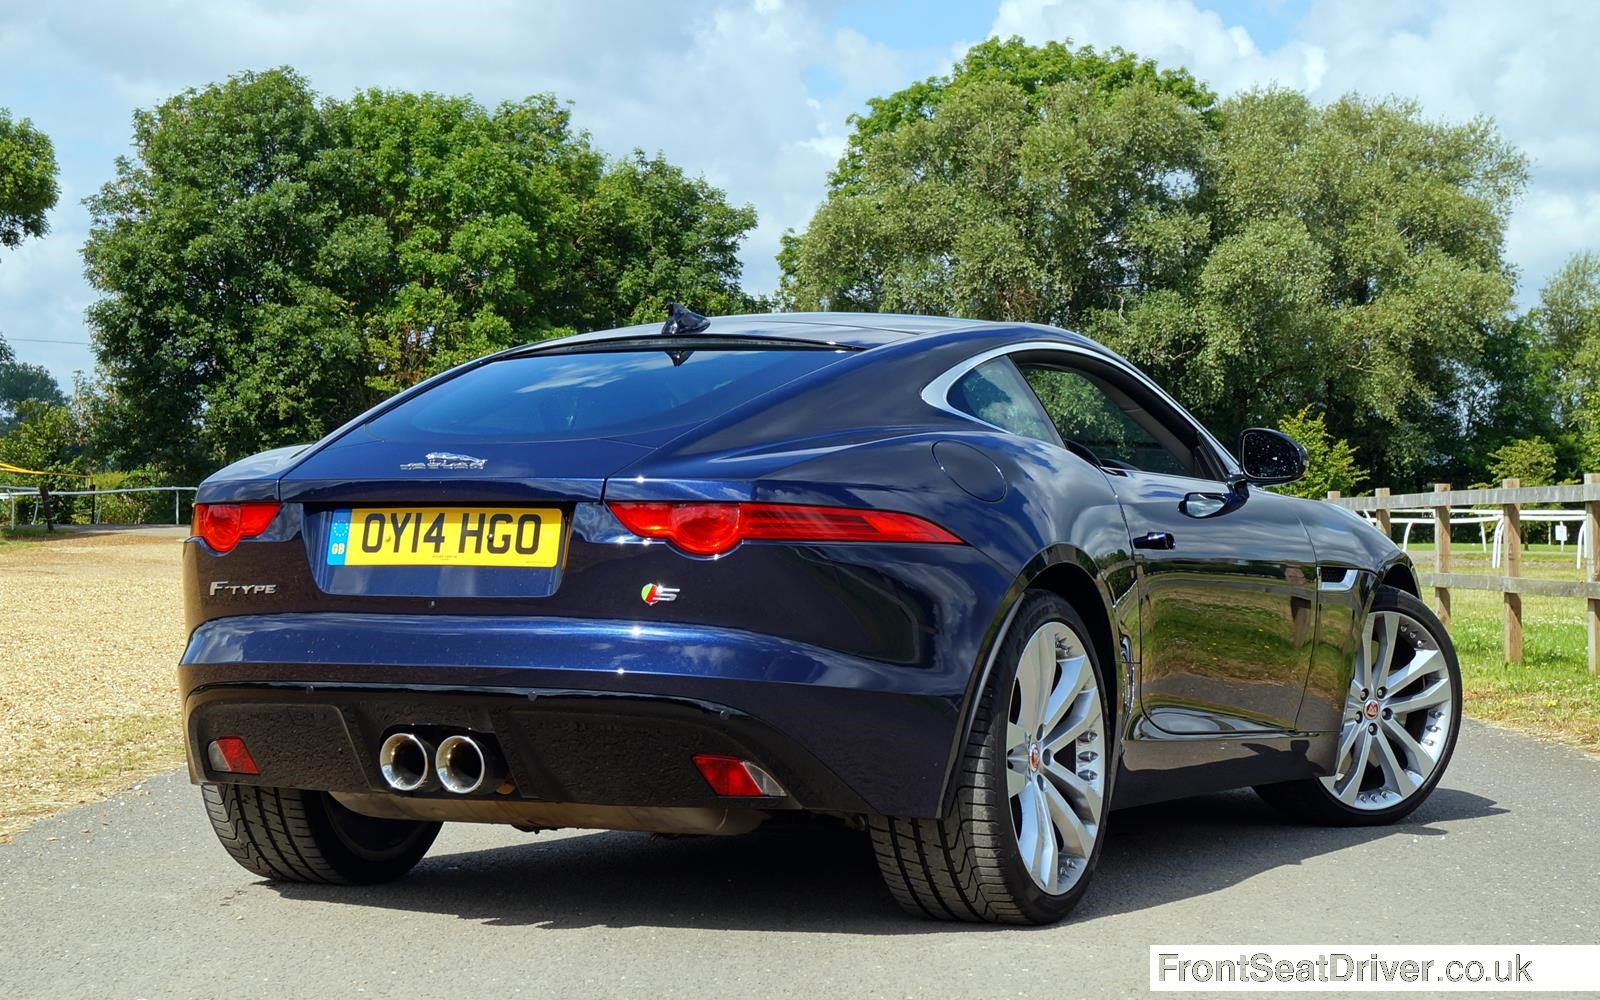 Jaguar F Type V6 S Coupe2014 Rear Phil Huff Frontseatdriver Co Uk Front Seat Driver